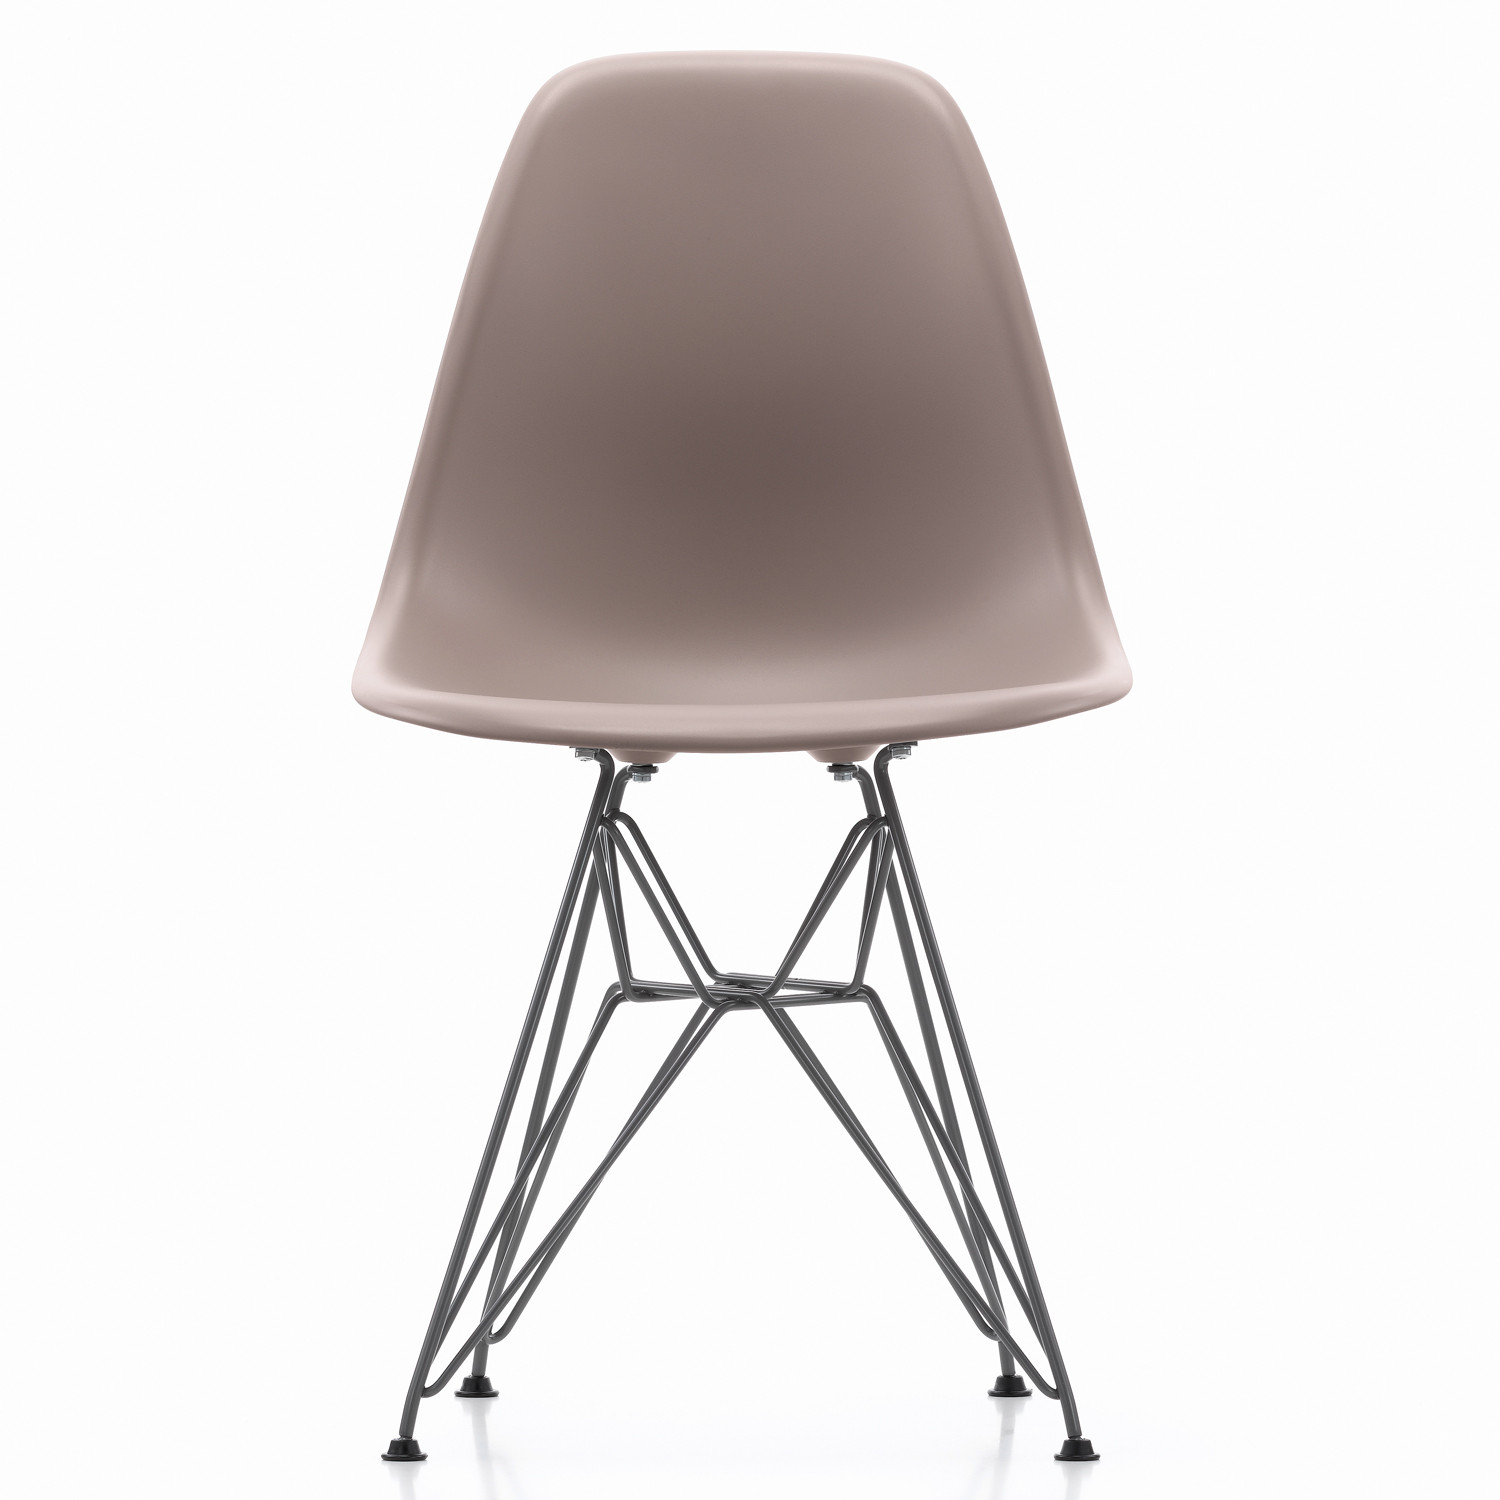 eames plastic side chair dsr contemporary dining chairs apres furniture. Black Bedroom Furniture Sets. Home Design Ideas